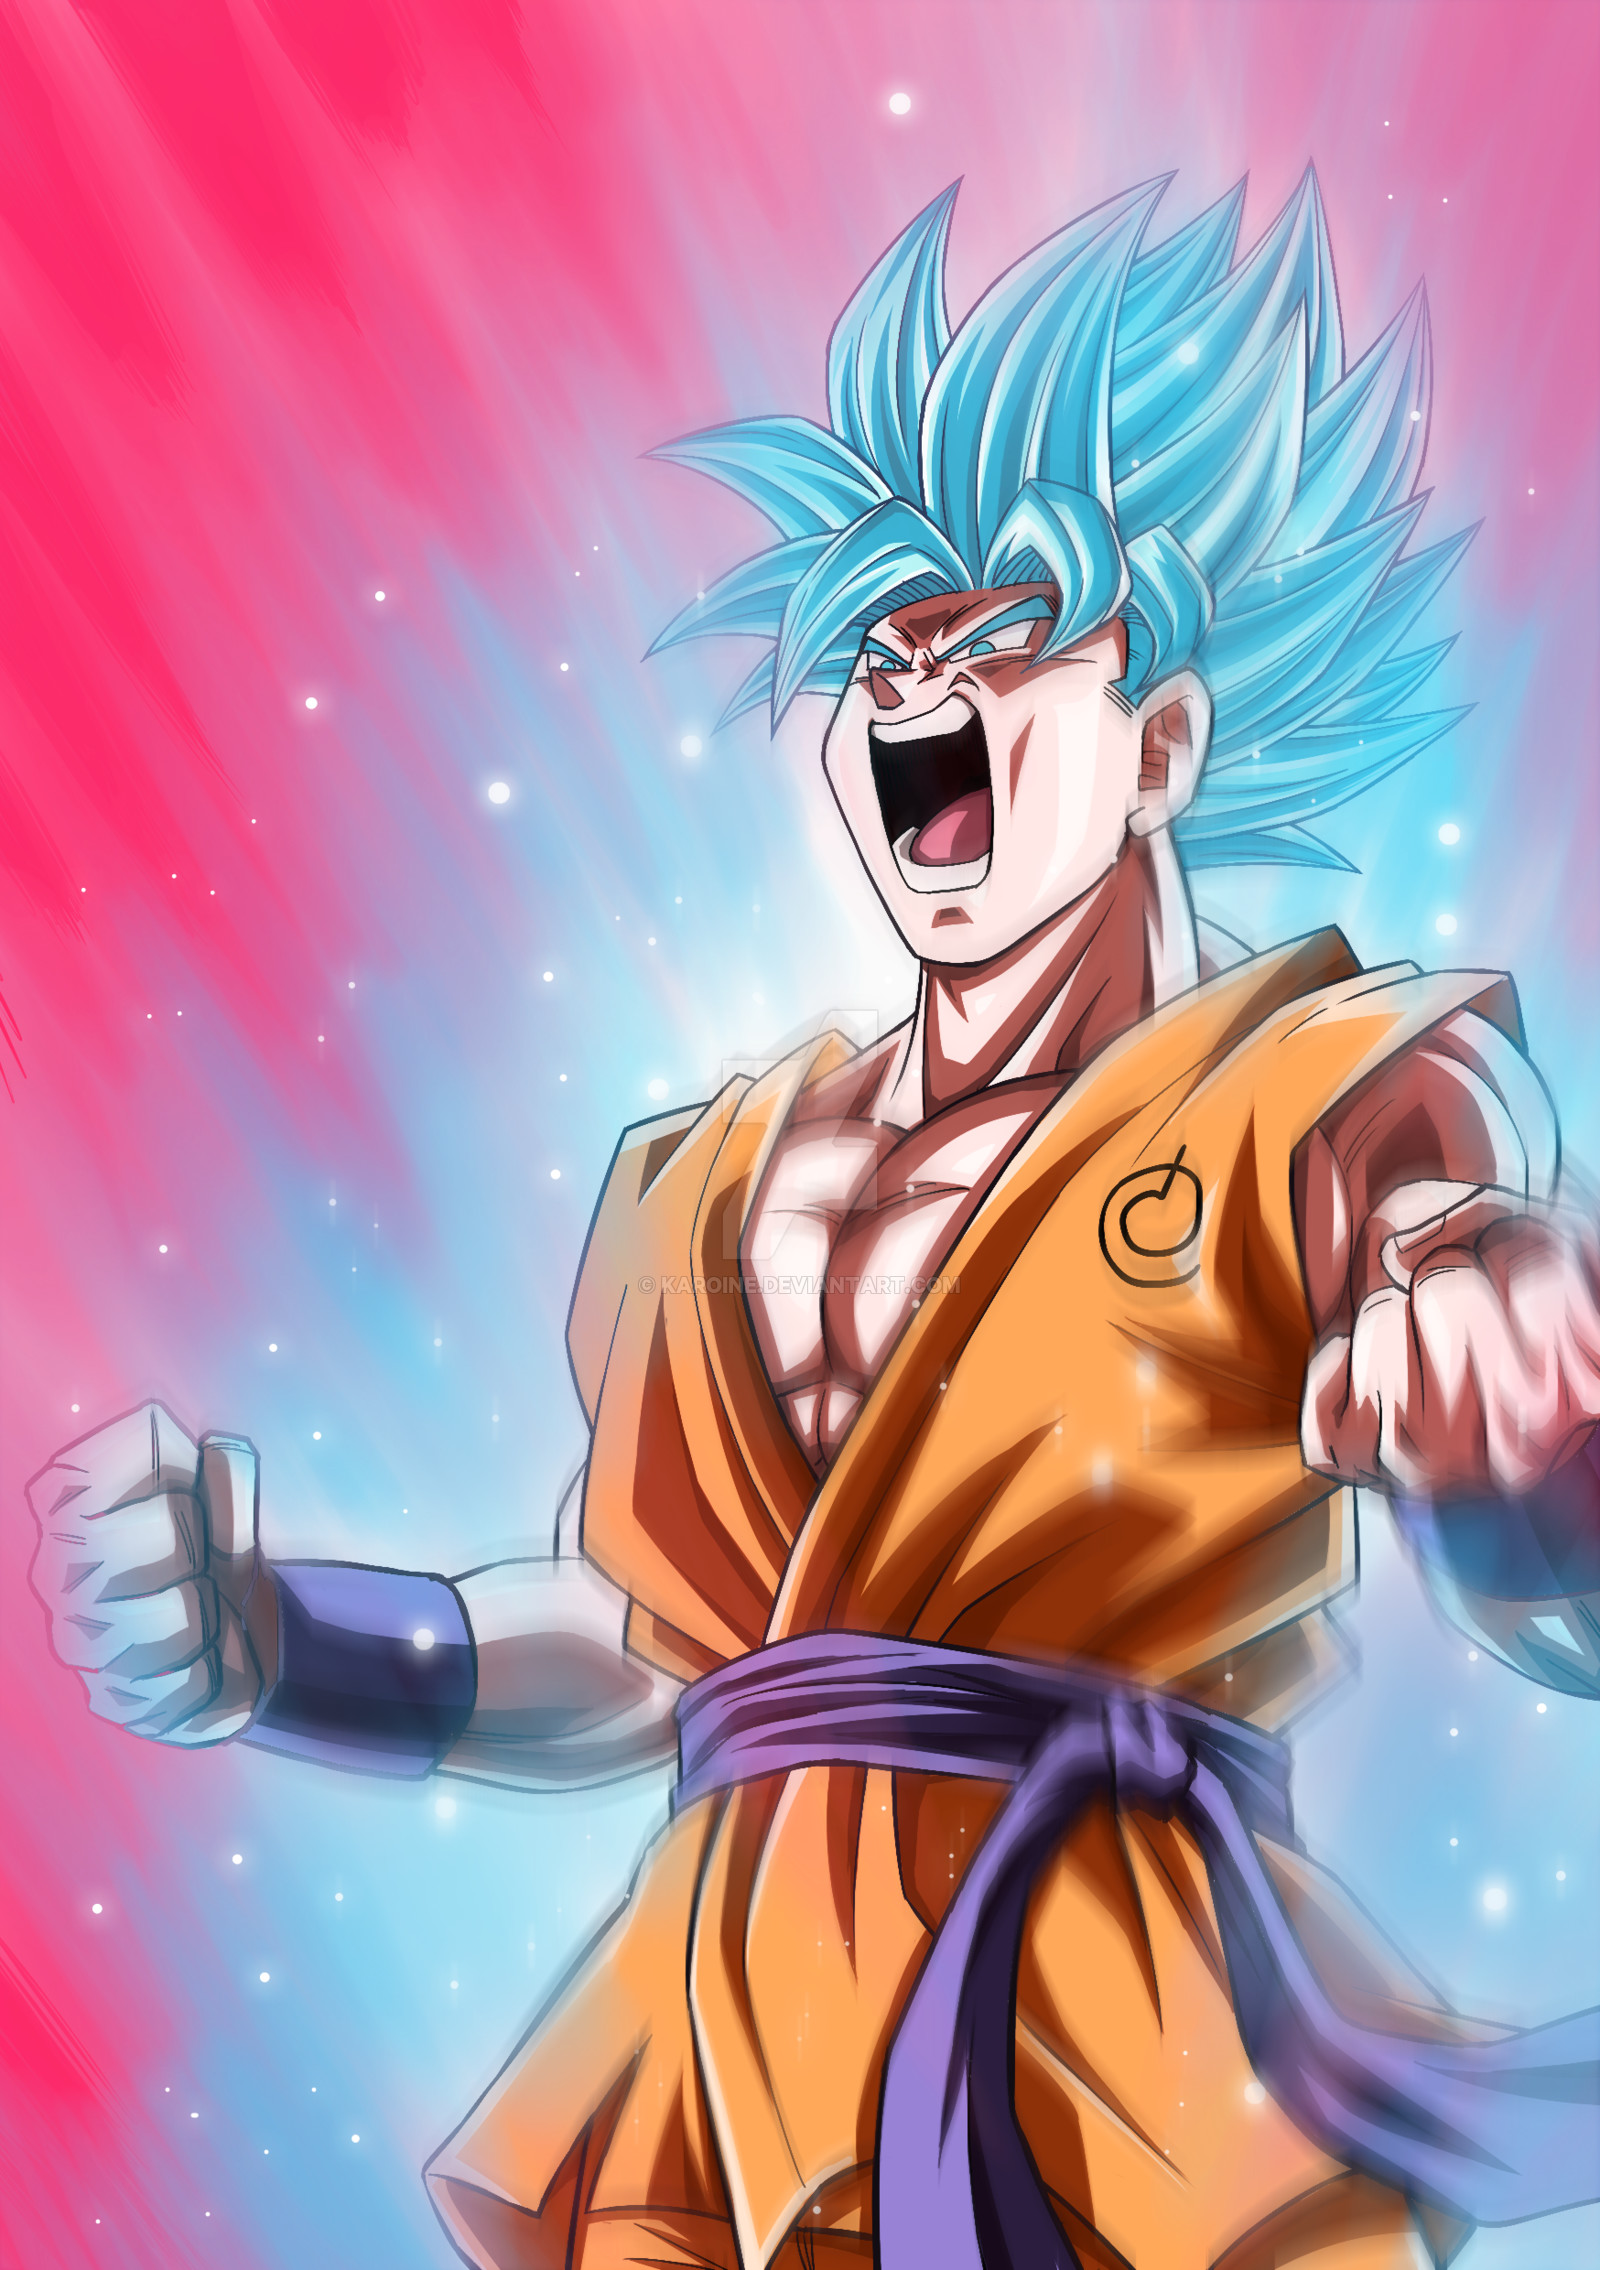 2000x1500 Dragon Ball Z Wallpaper Goku Super Saiyan God Wallpapers HD